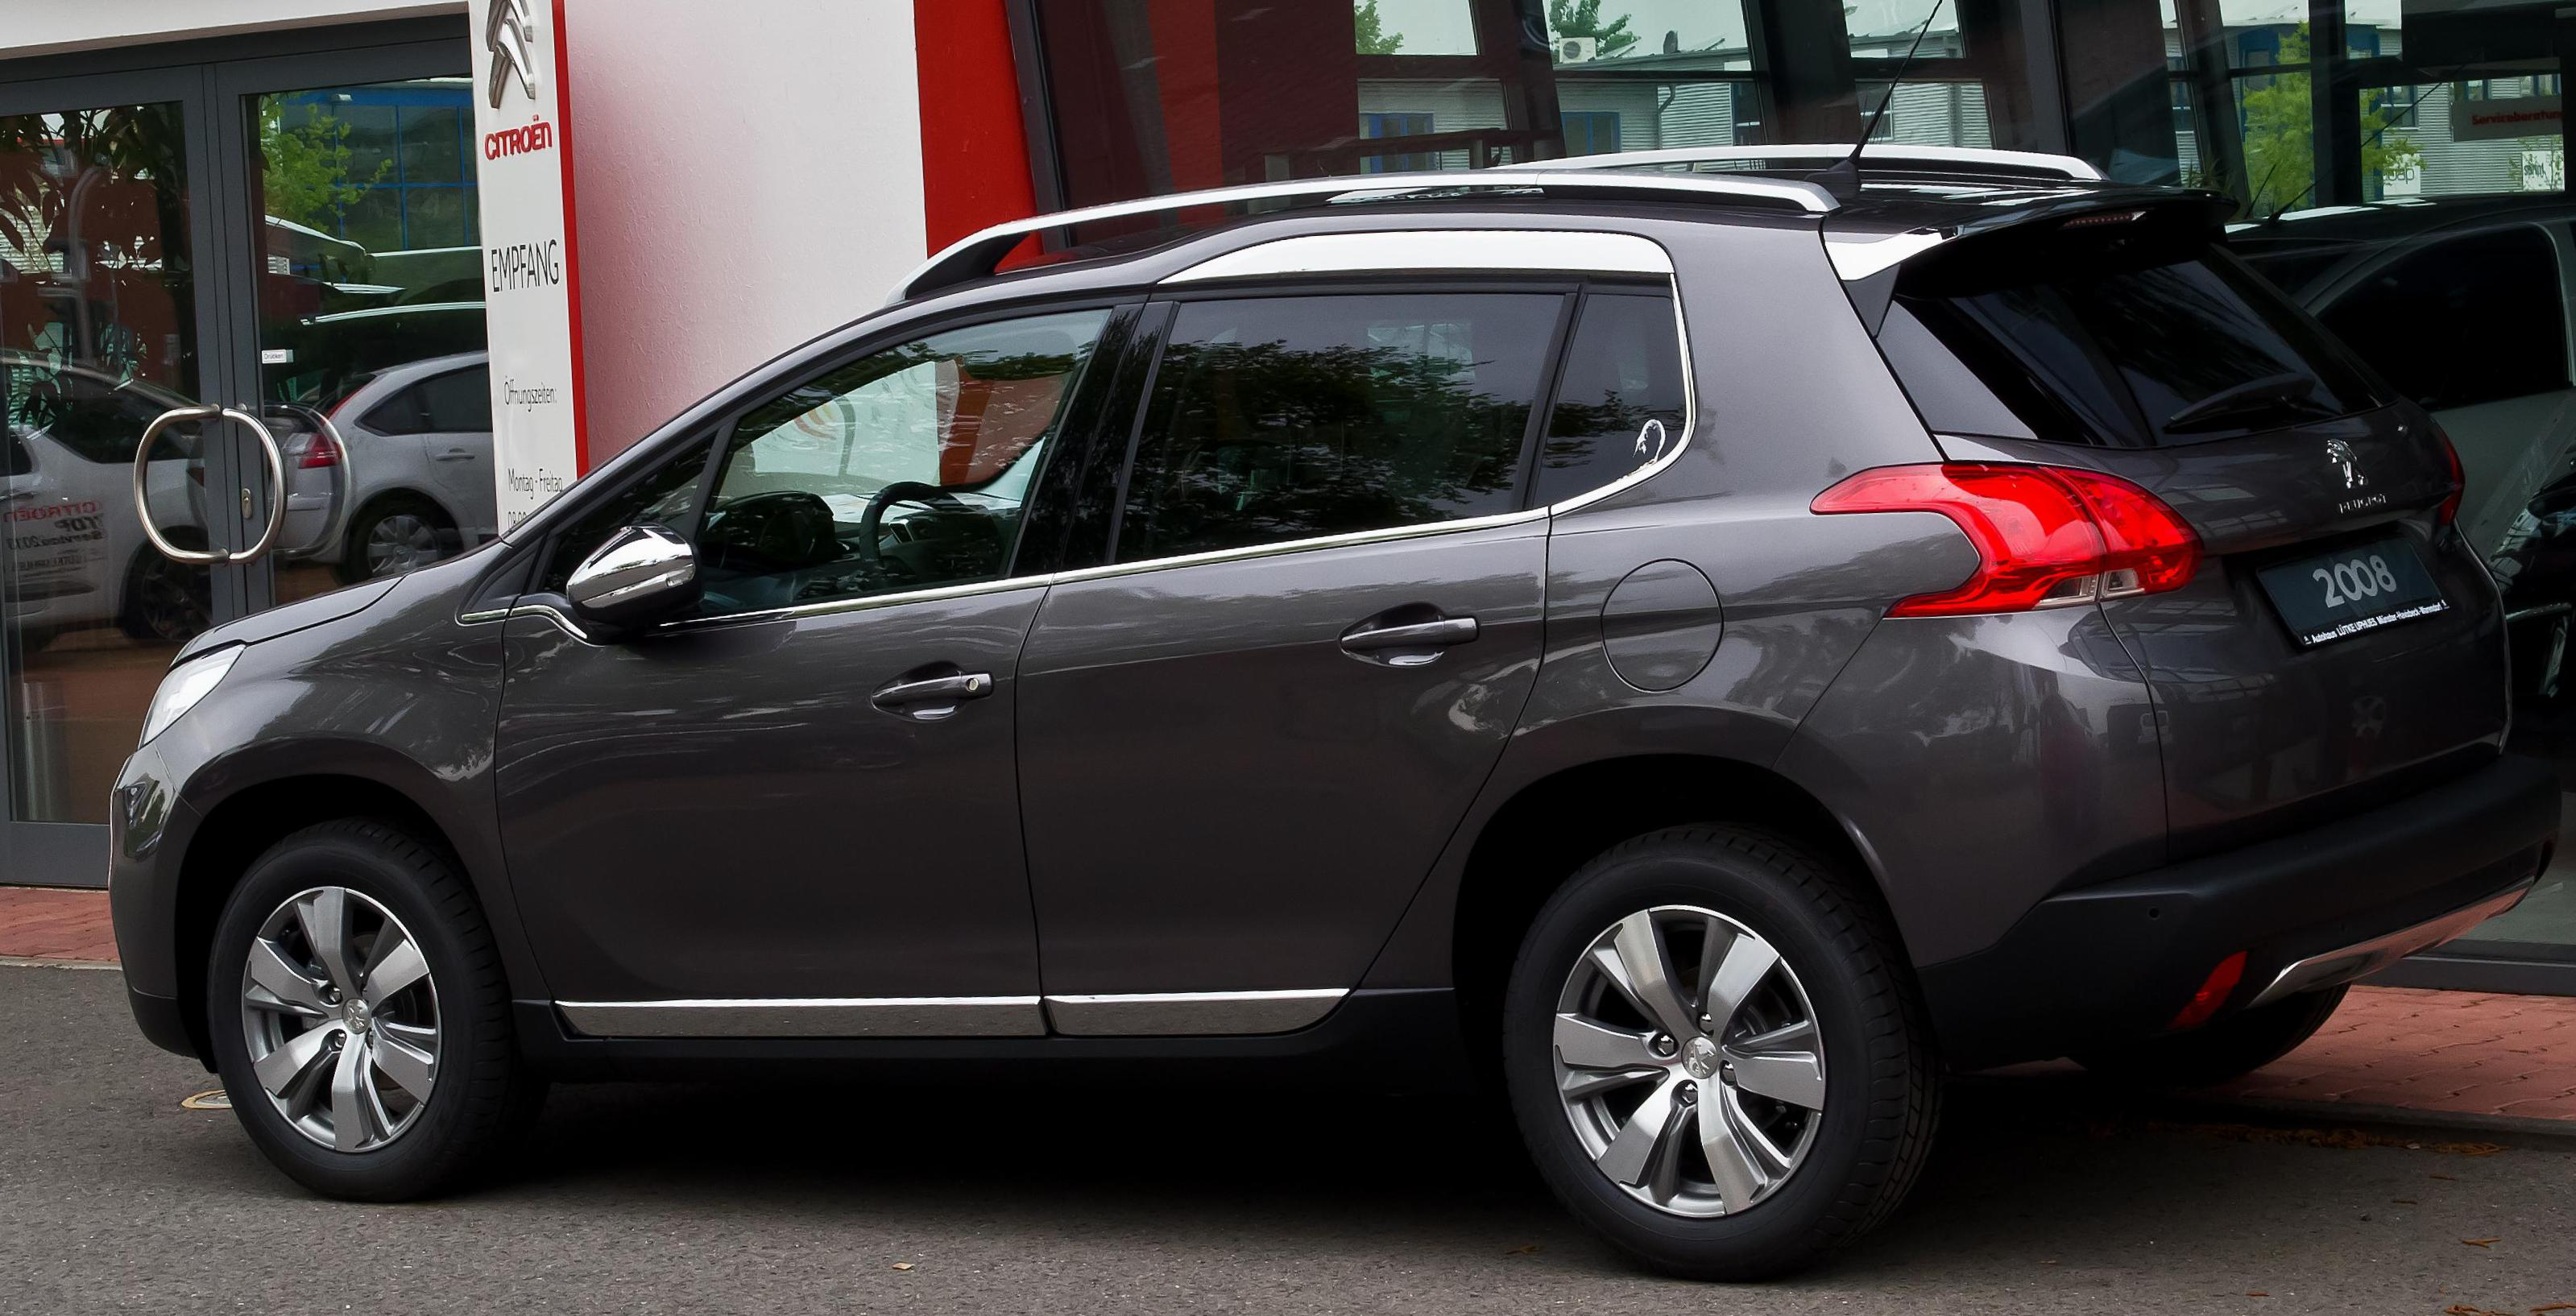 2008 Peugeot how mach suv